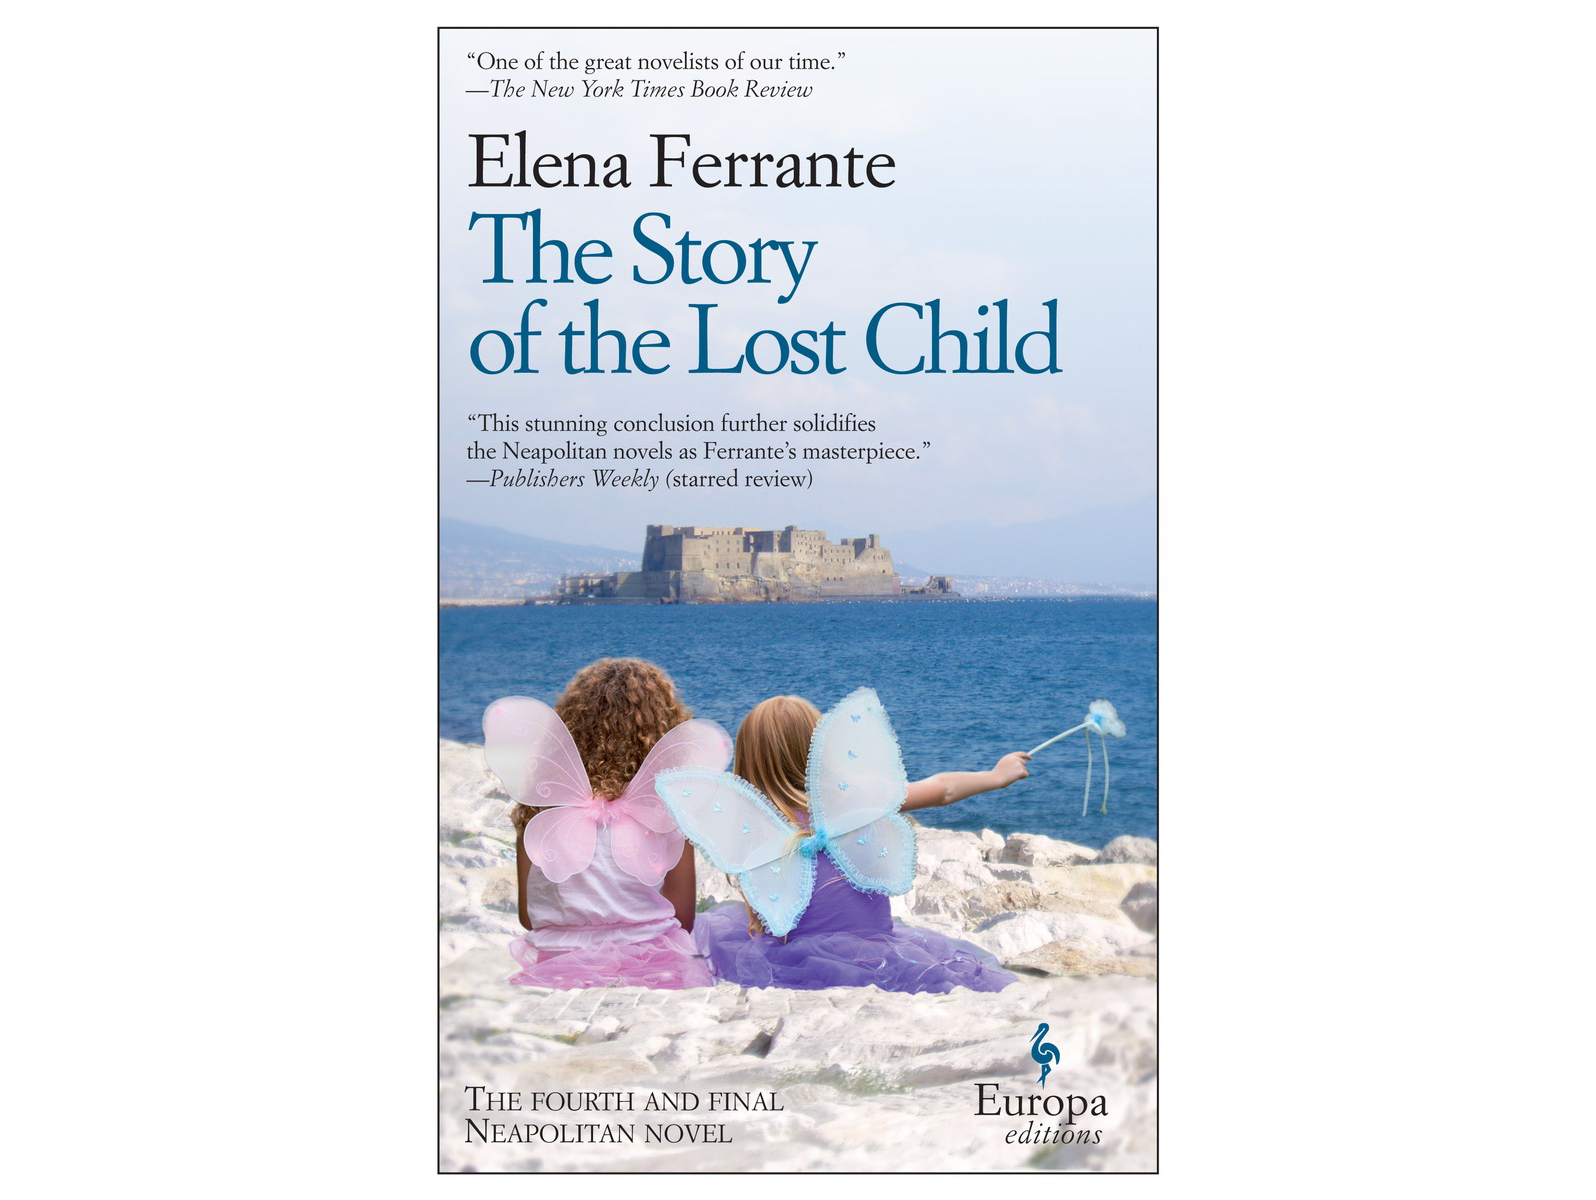 The Story of the Lost Child, by Elena Ferrante